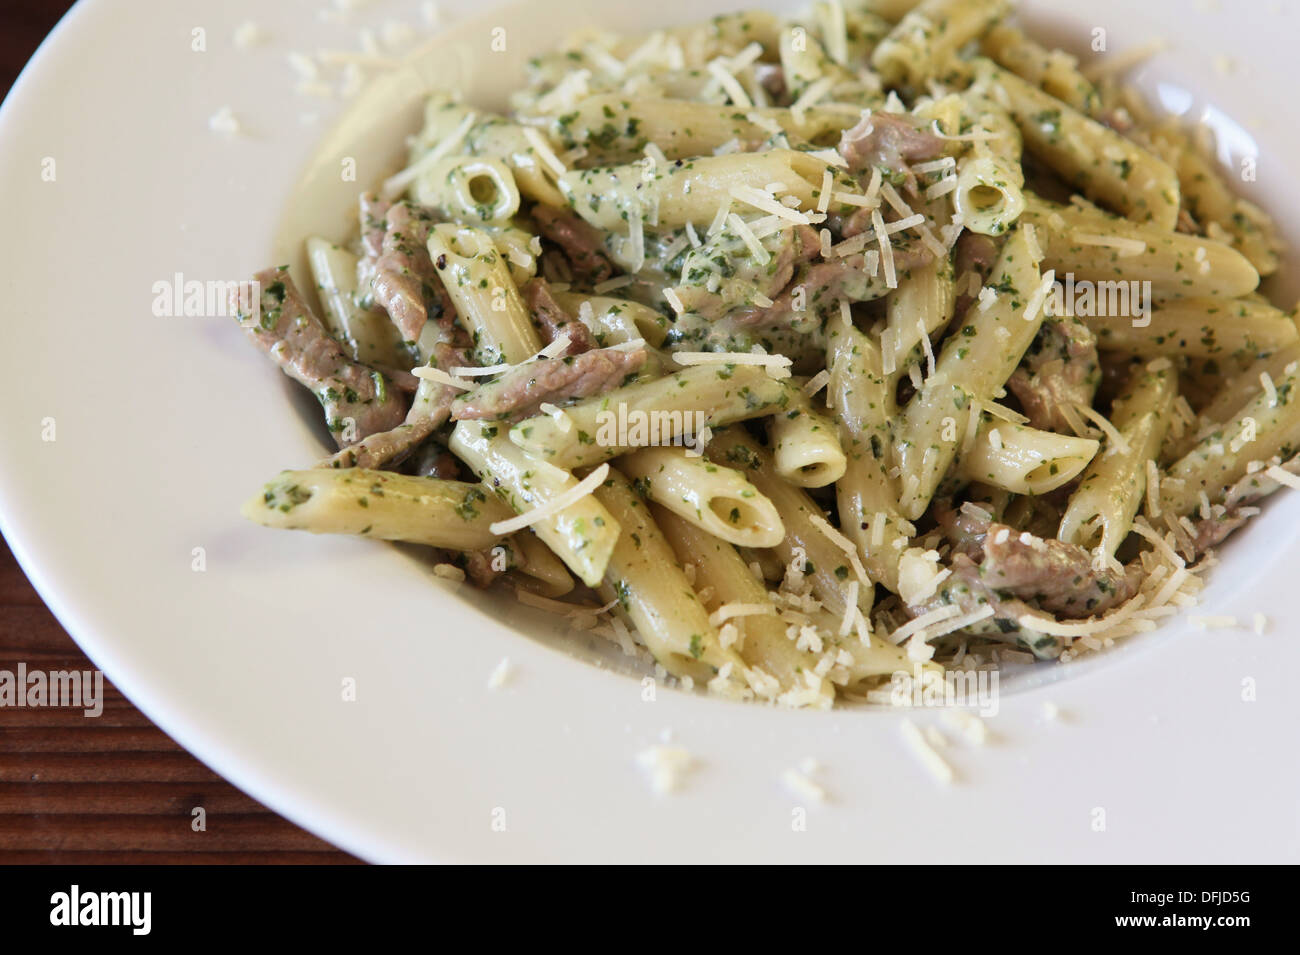 A serving of Penne pasta with herbs, beef and cheese - Stock Image